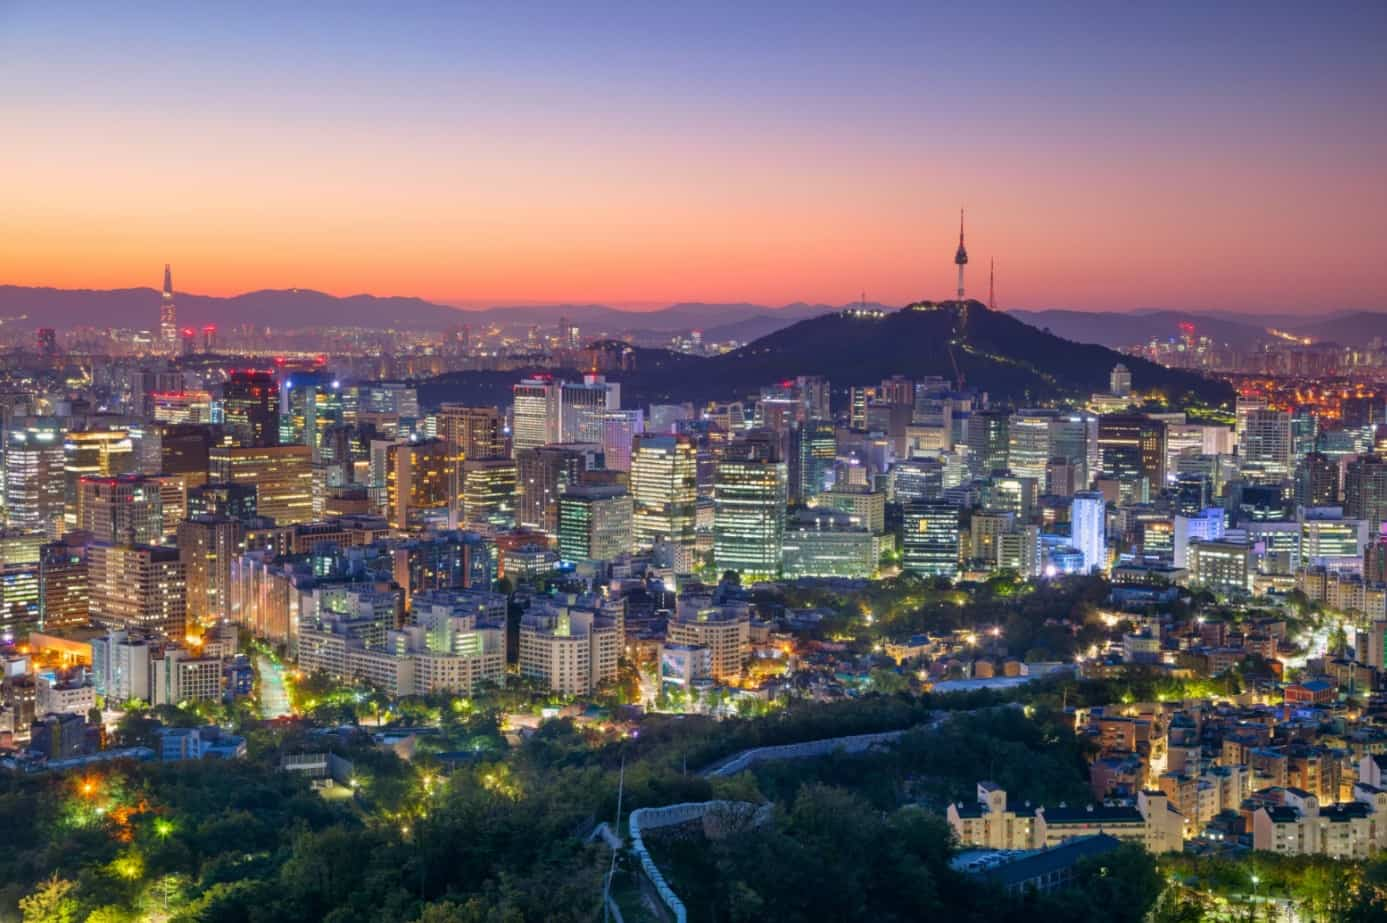 [SCB News] Seoul Convention Bureau: We Seek to Bounce Back Strong in Partnership